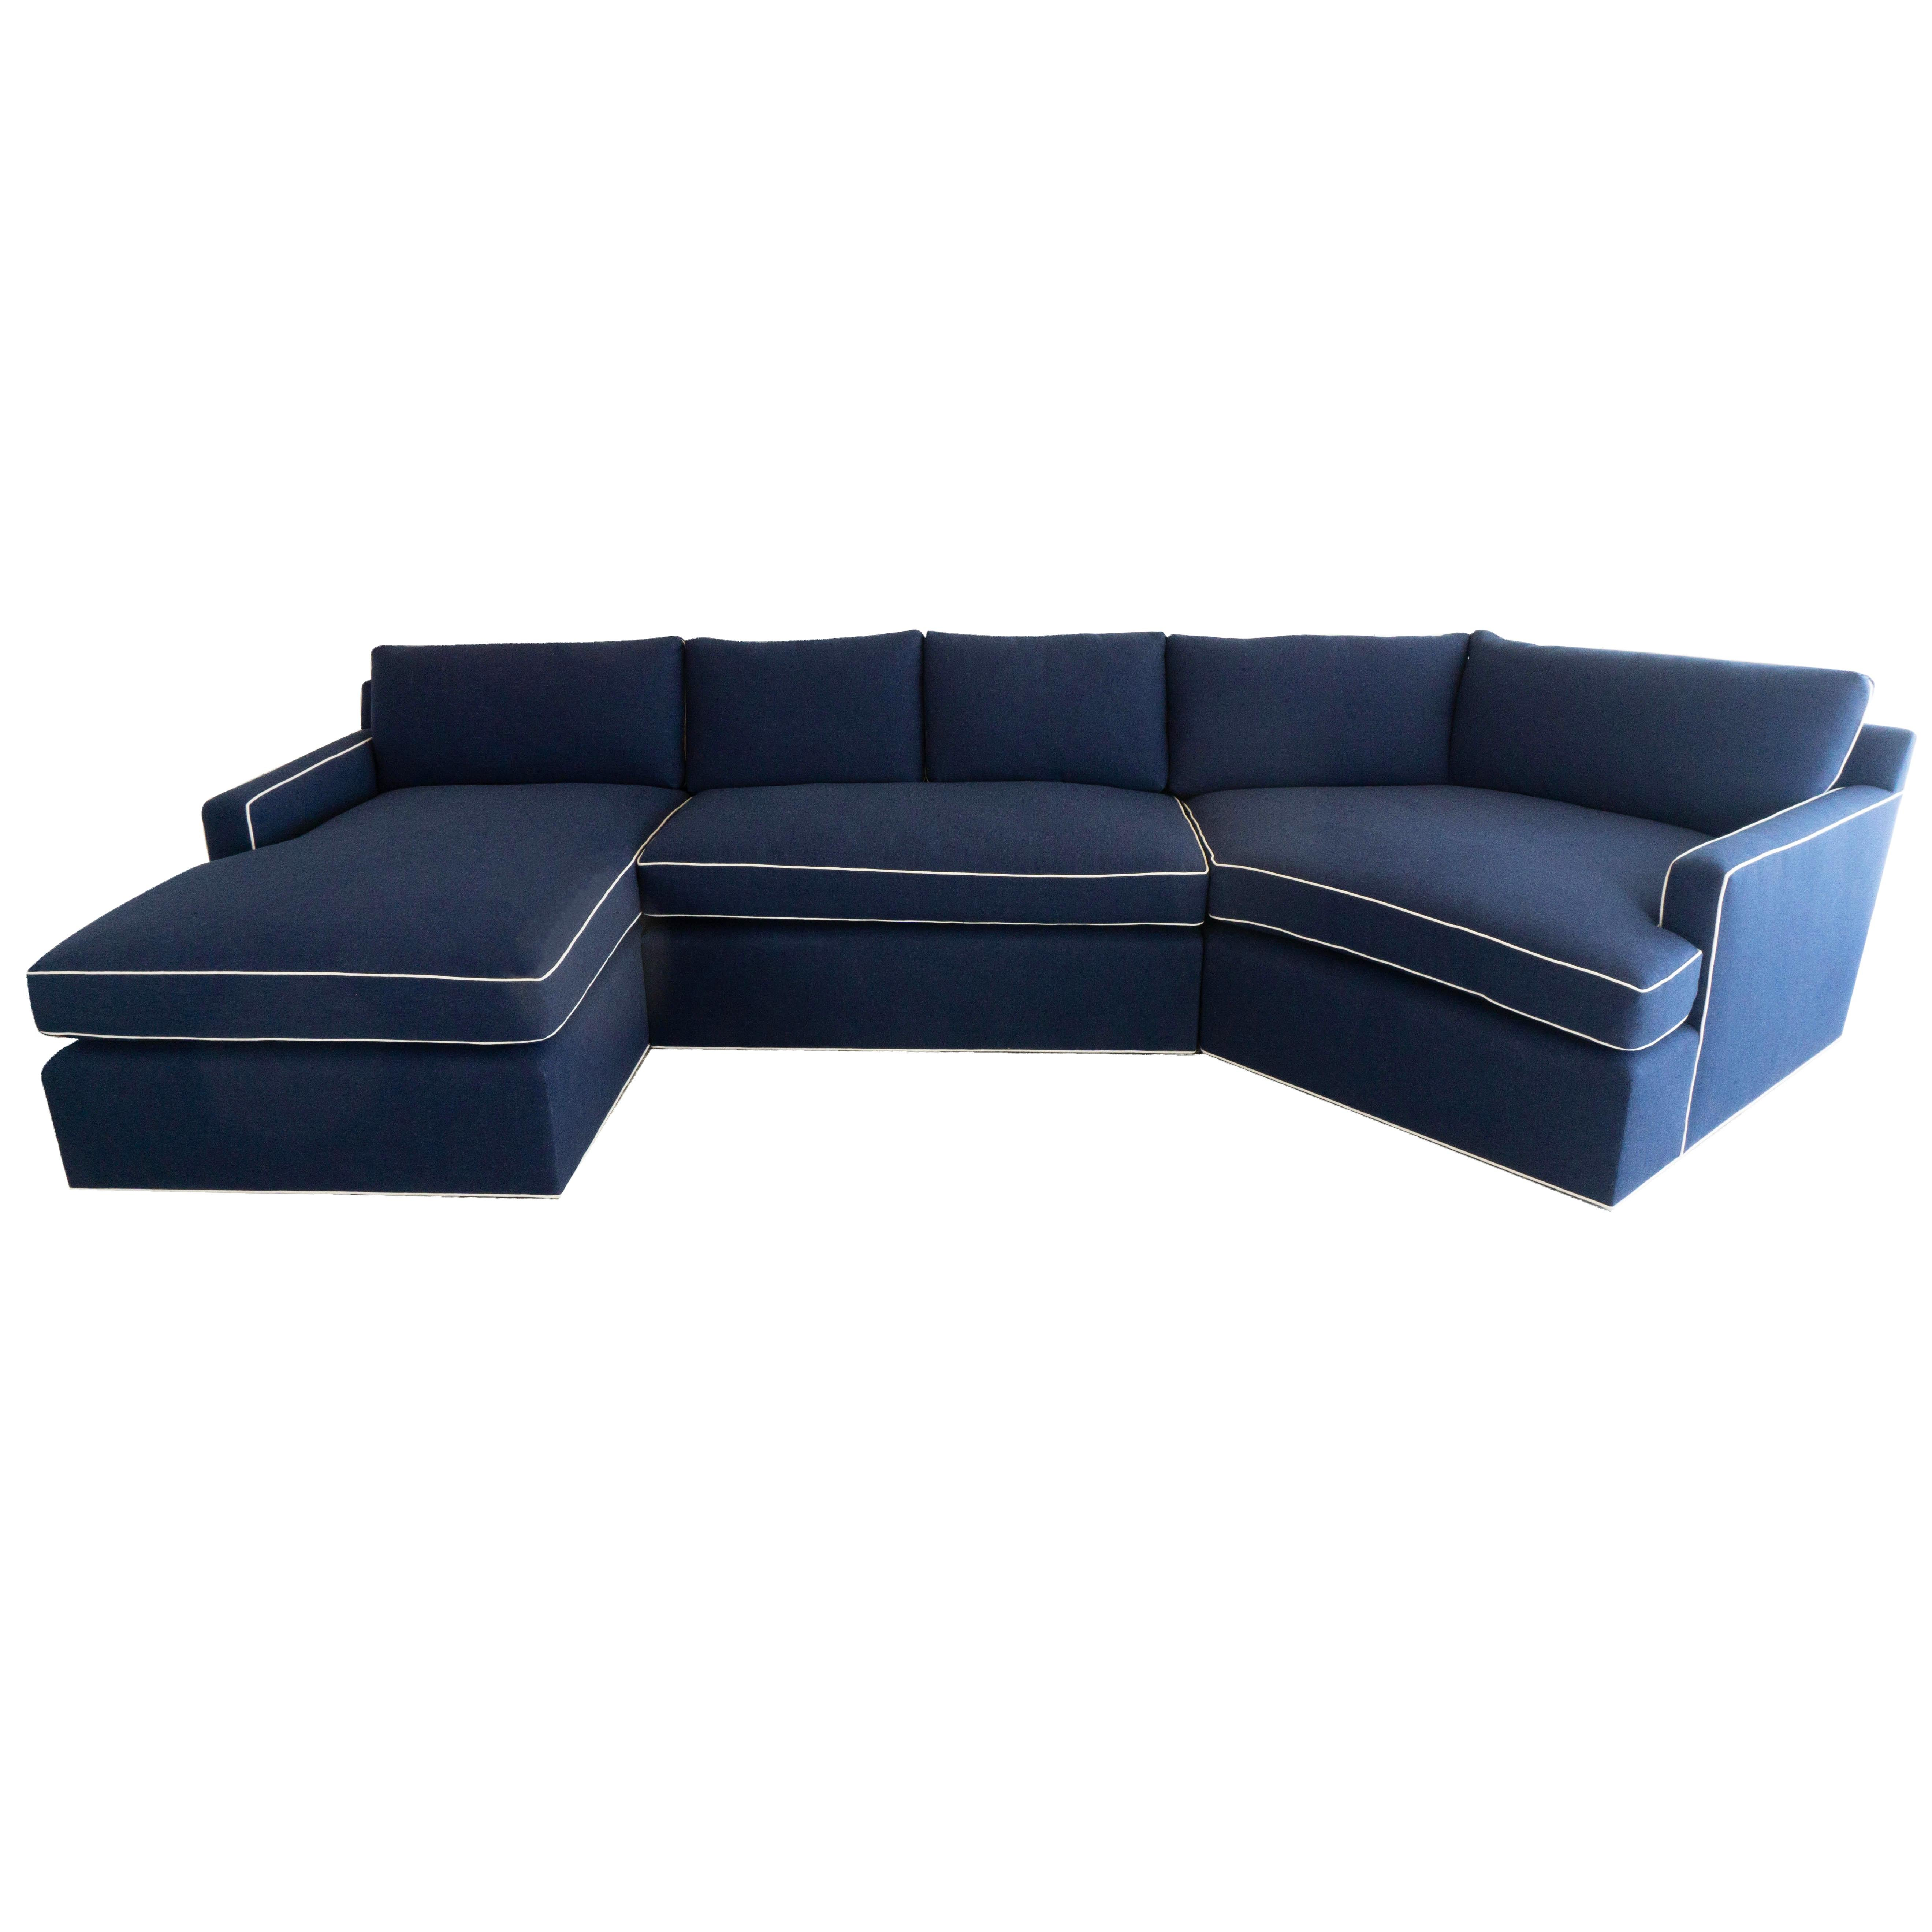 custom sectional sofa score live apk large with chaise lounge for sale at 1stdibs